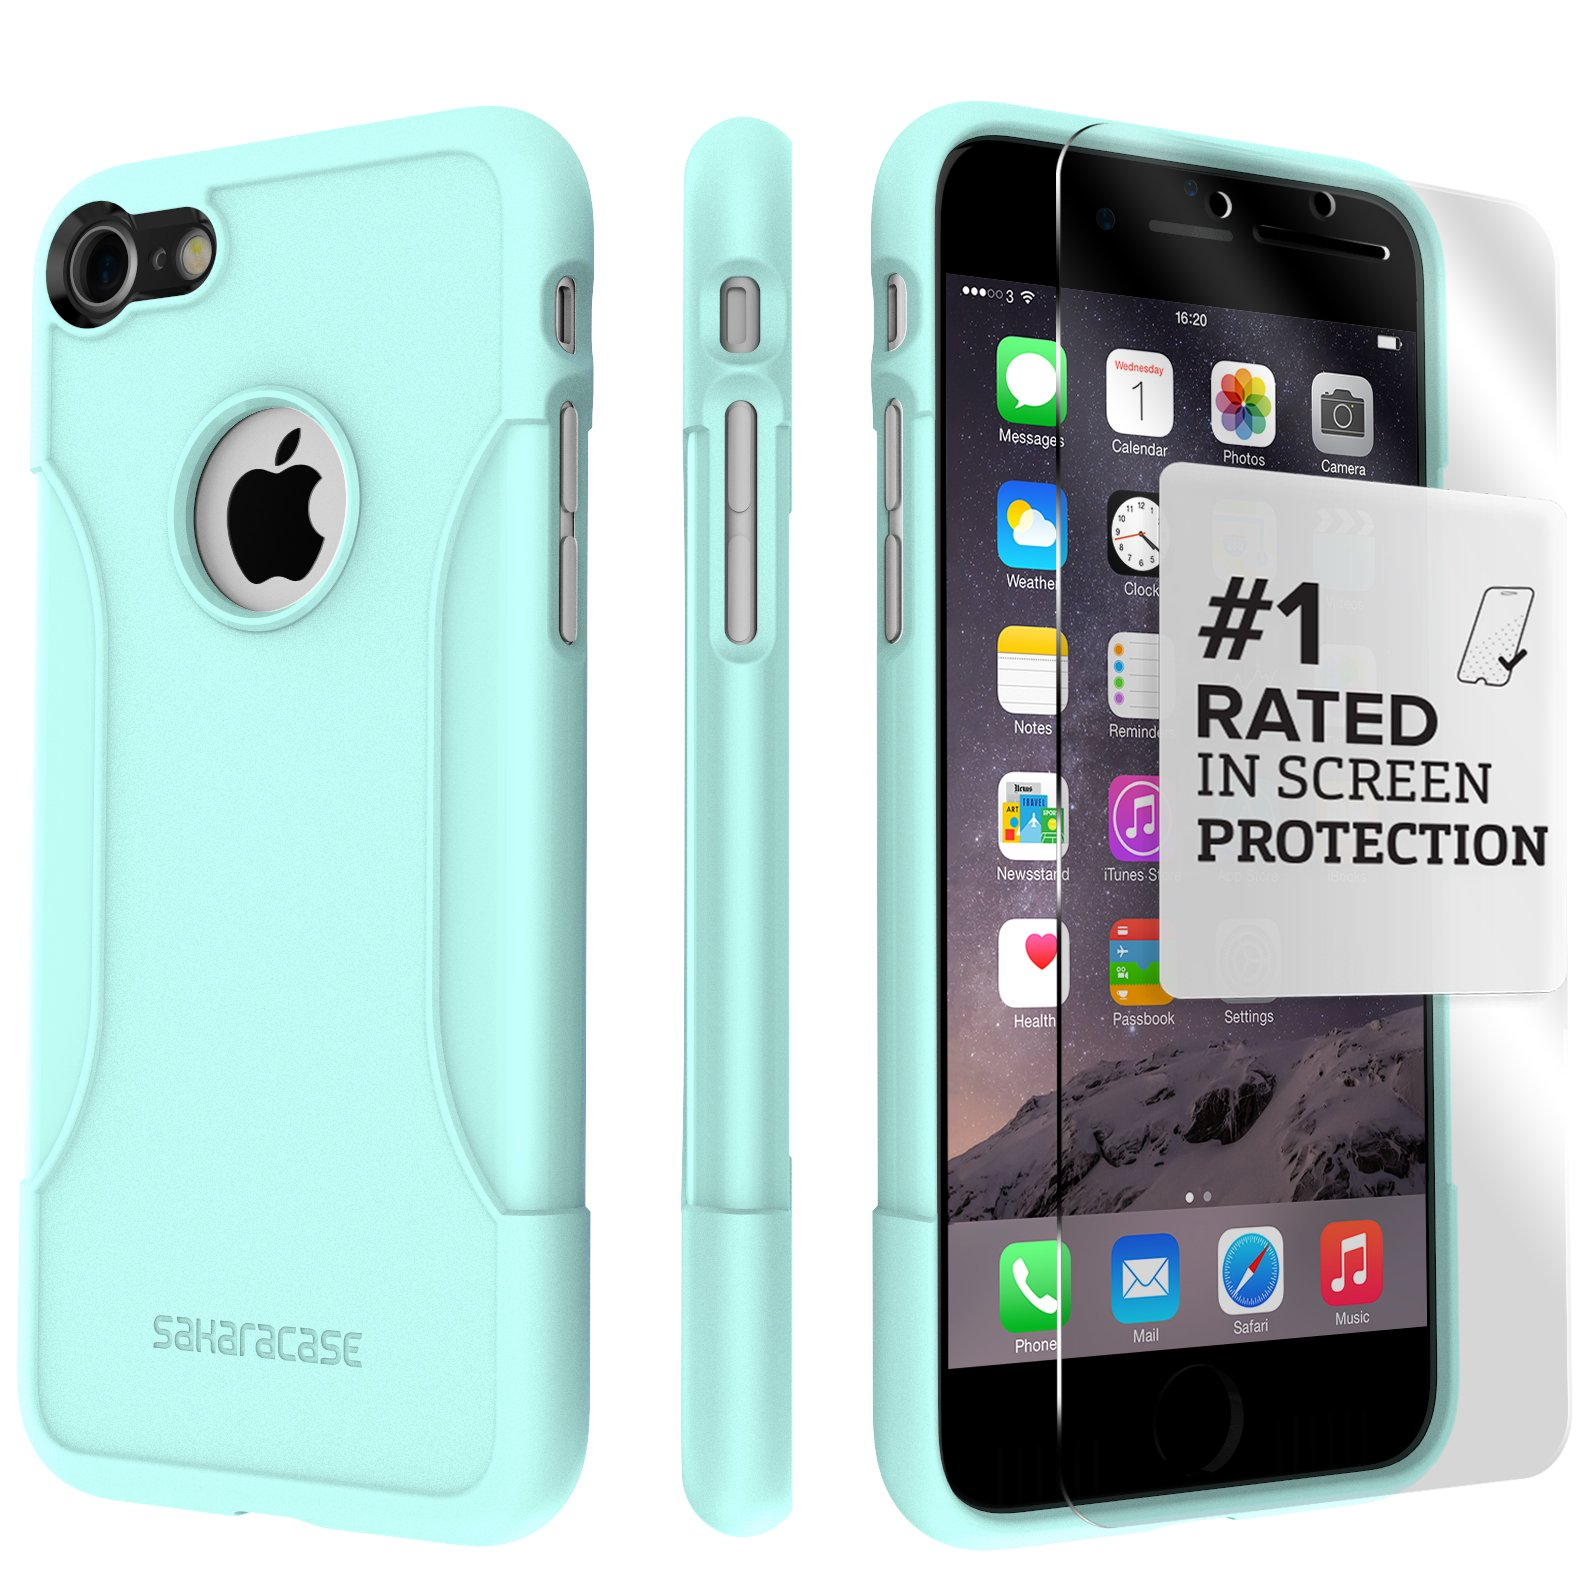 iPhone 8 Case and 7 Case, SaharaCase Protective Kit Bundle with [ZeroDamage Tempered Glass Screen Protector] Rugged Protection Anti-Slip Grip [Shockproof Bumper] Slim Fit - Aqua Teal by Sahara Case